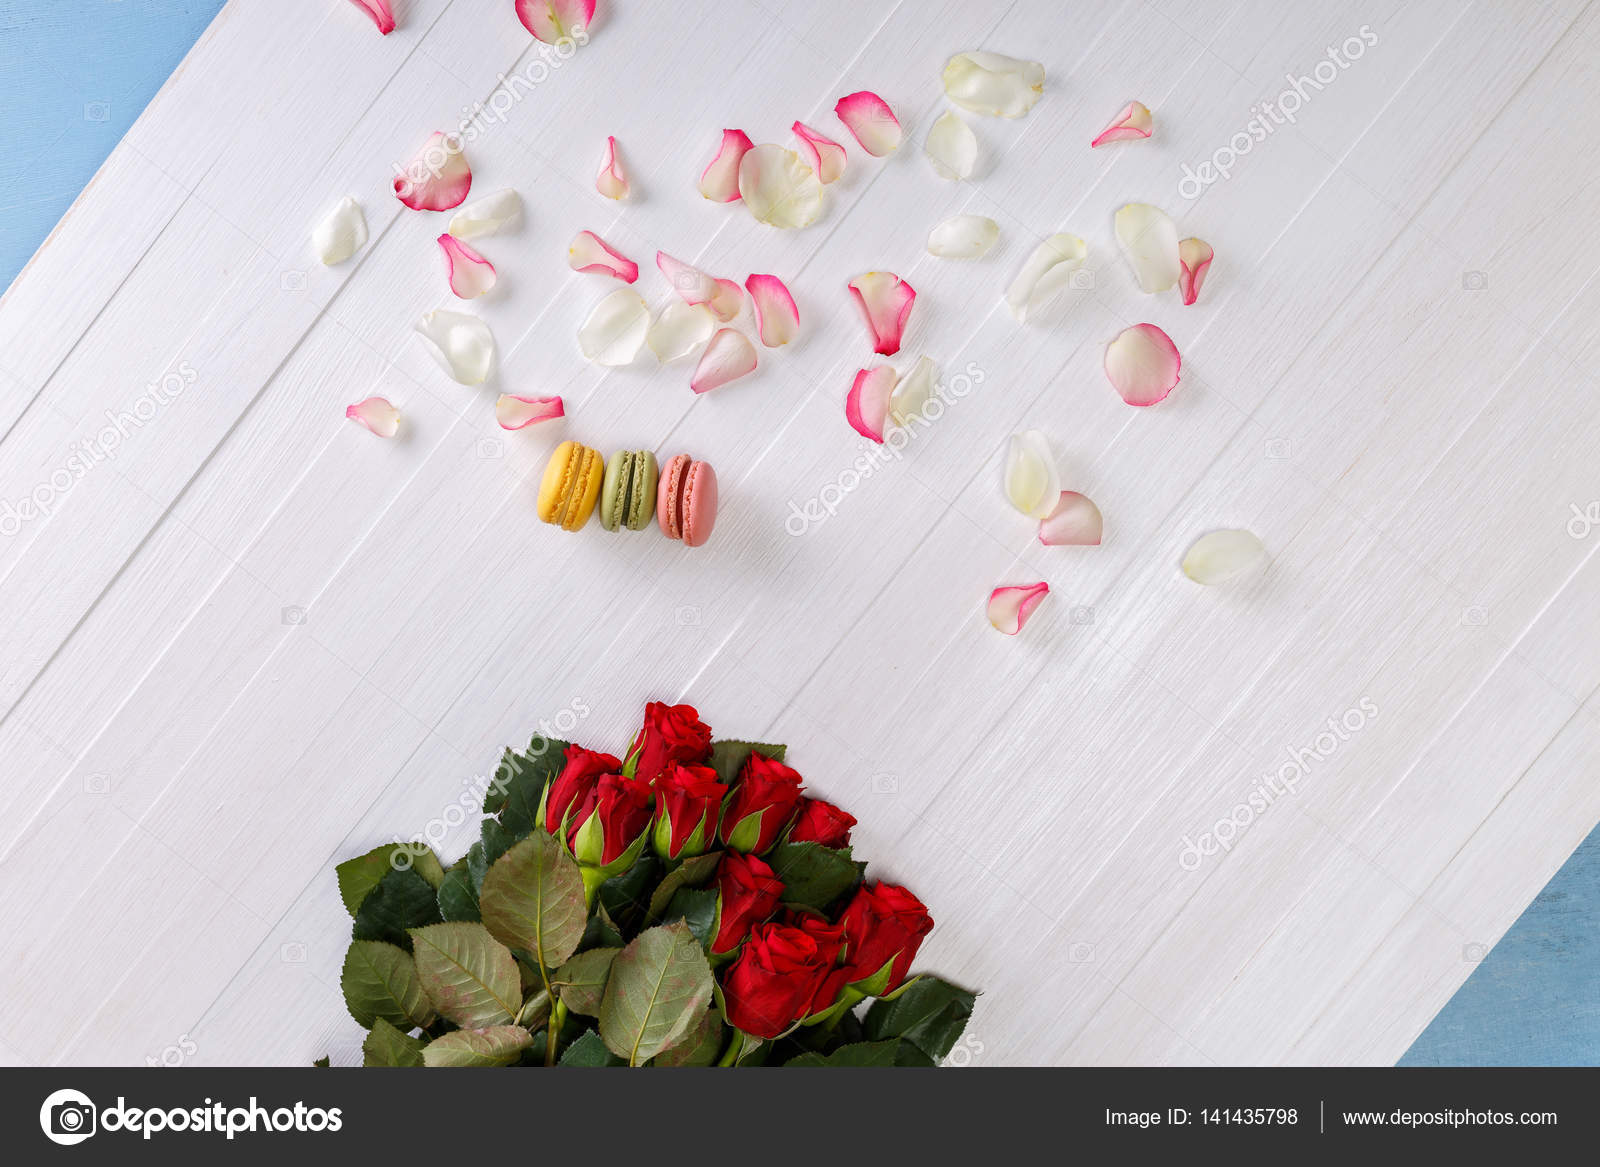 Macaroon cakes with bouquet of red roses stock photo tanyastock macaroon cakes with bouquet of red roses stock photo izmirmasajfo